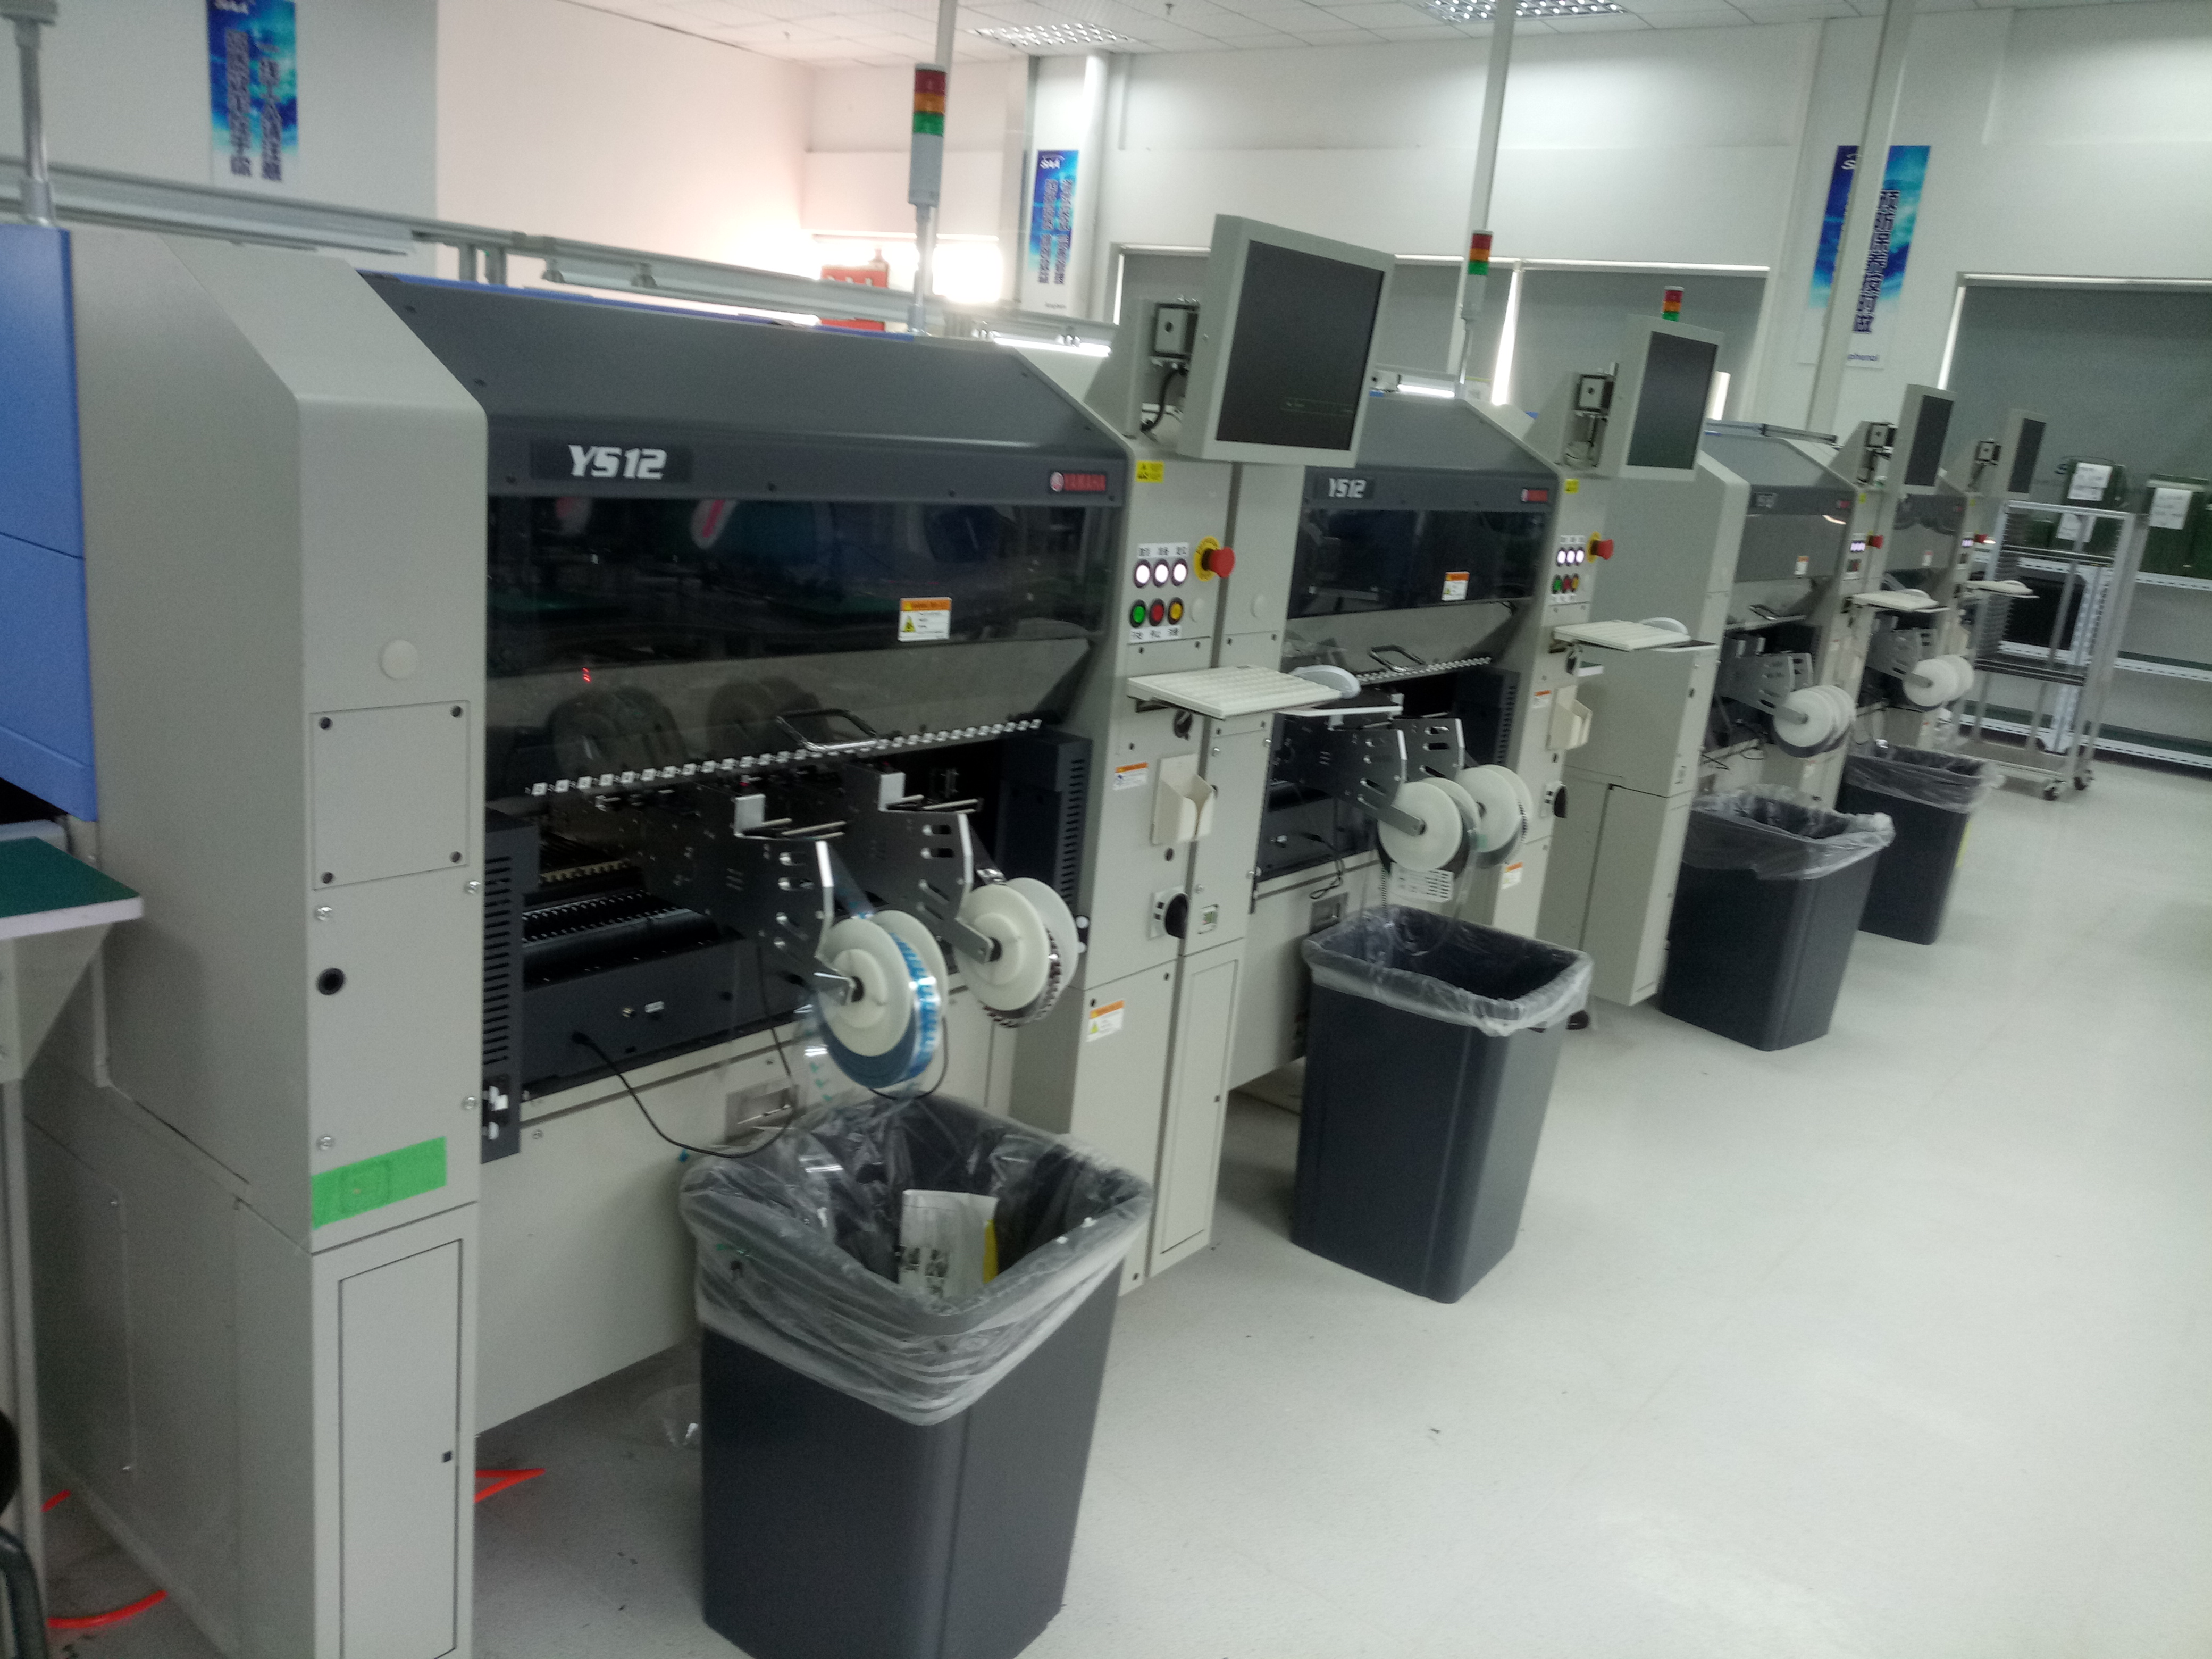 labelling en able marking self are can a or stationary products feeder adhesive print for machines machine alcode printed computer interfaced label nordsystems apply be either to systems labels and the with